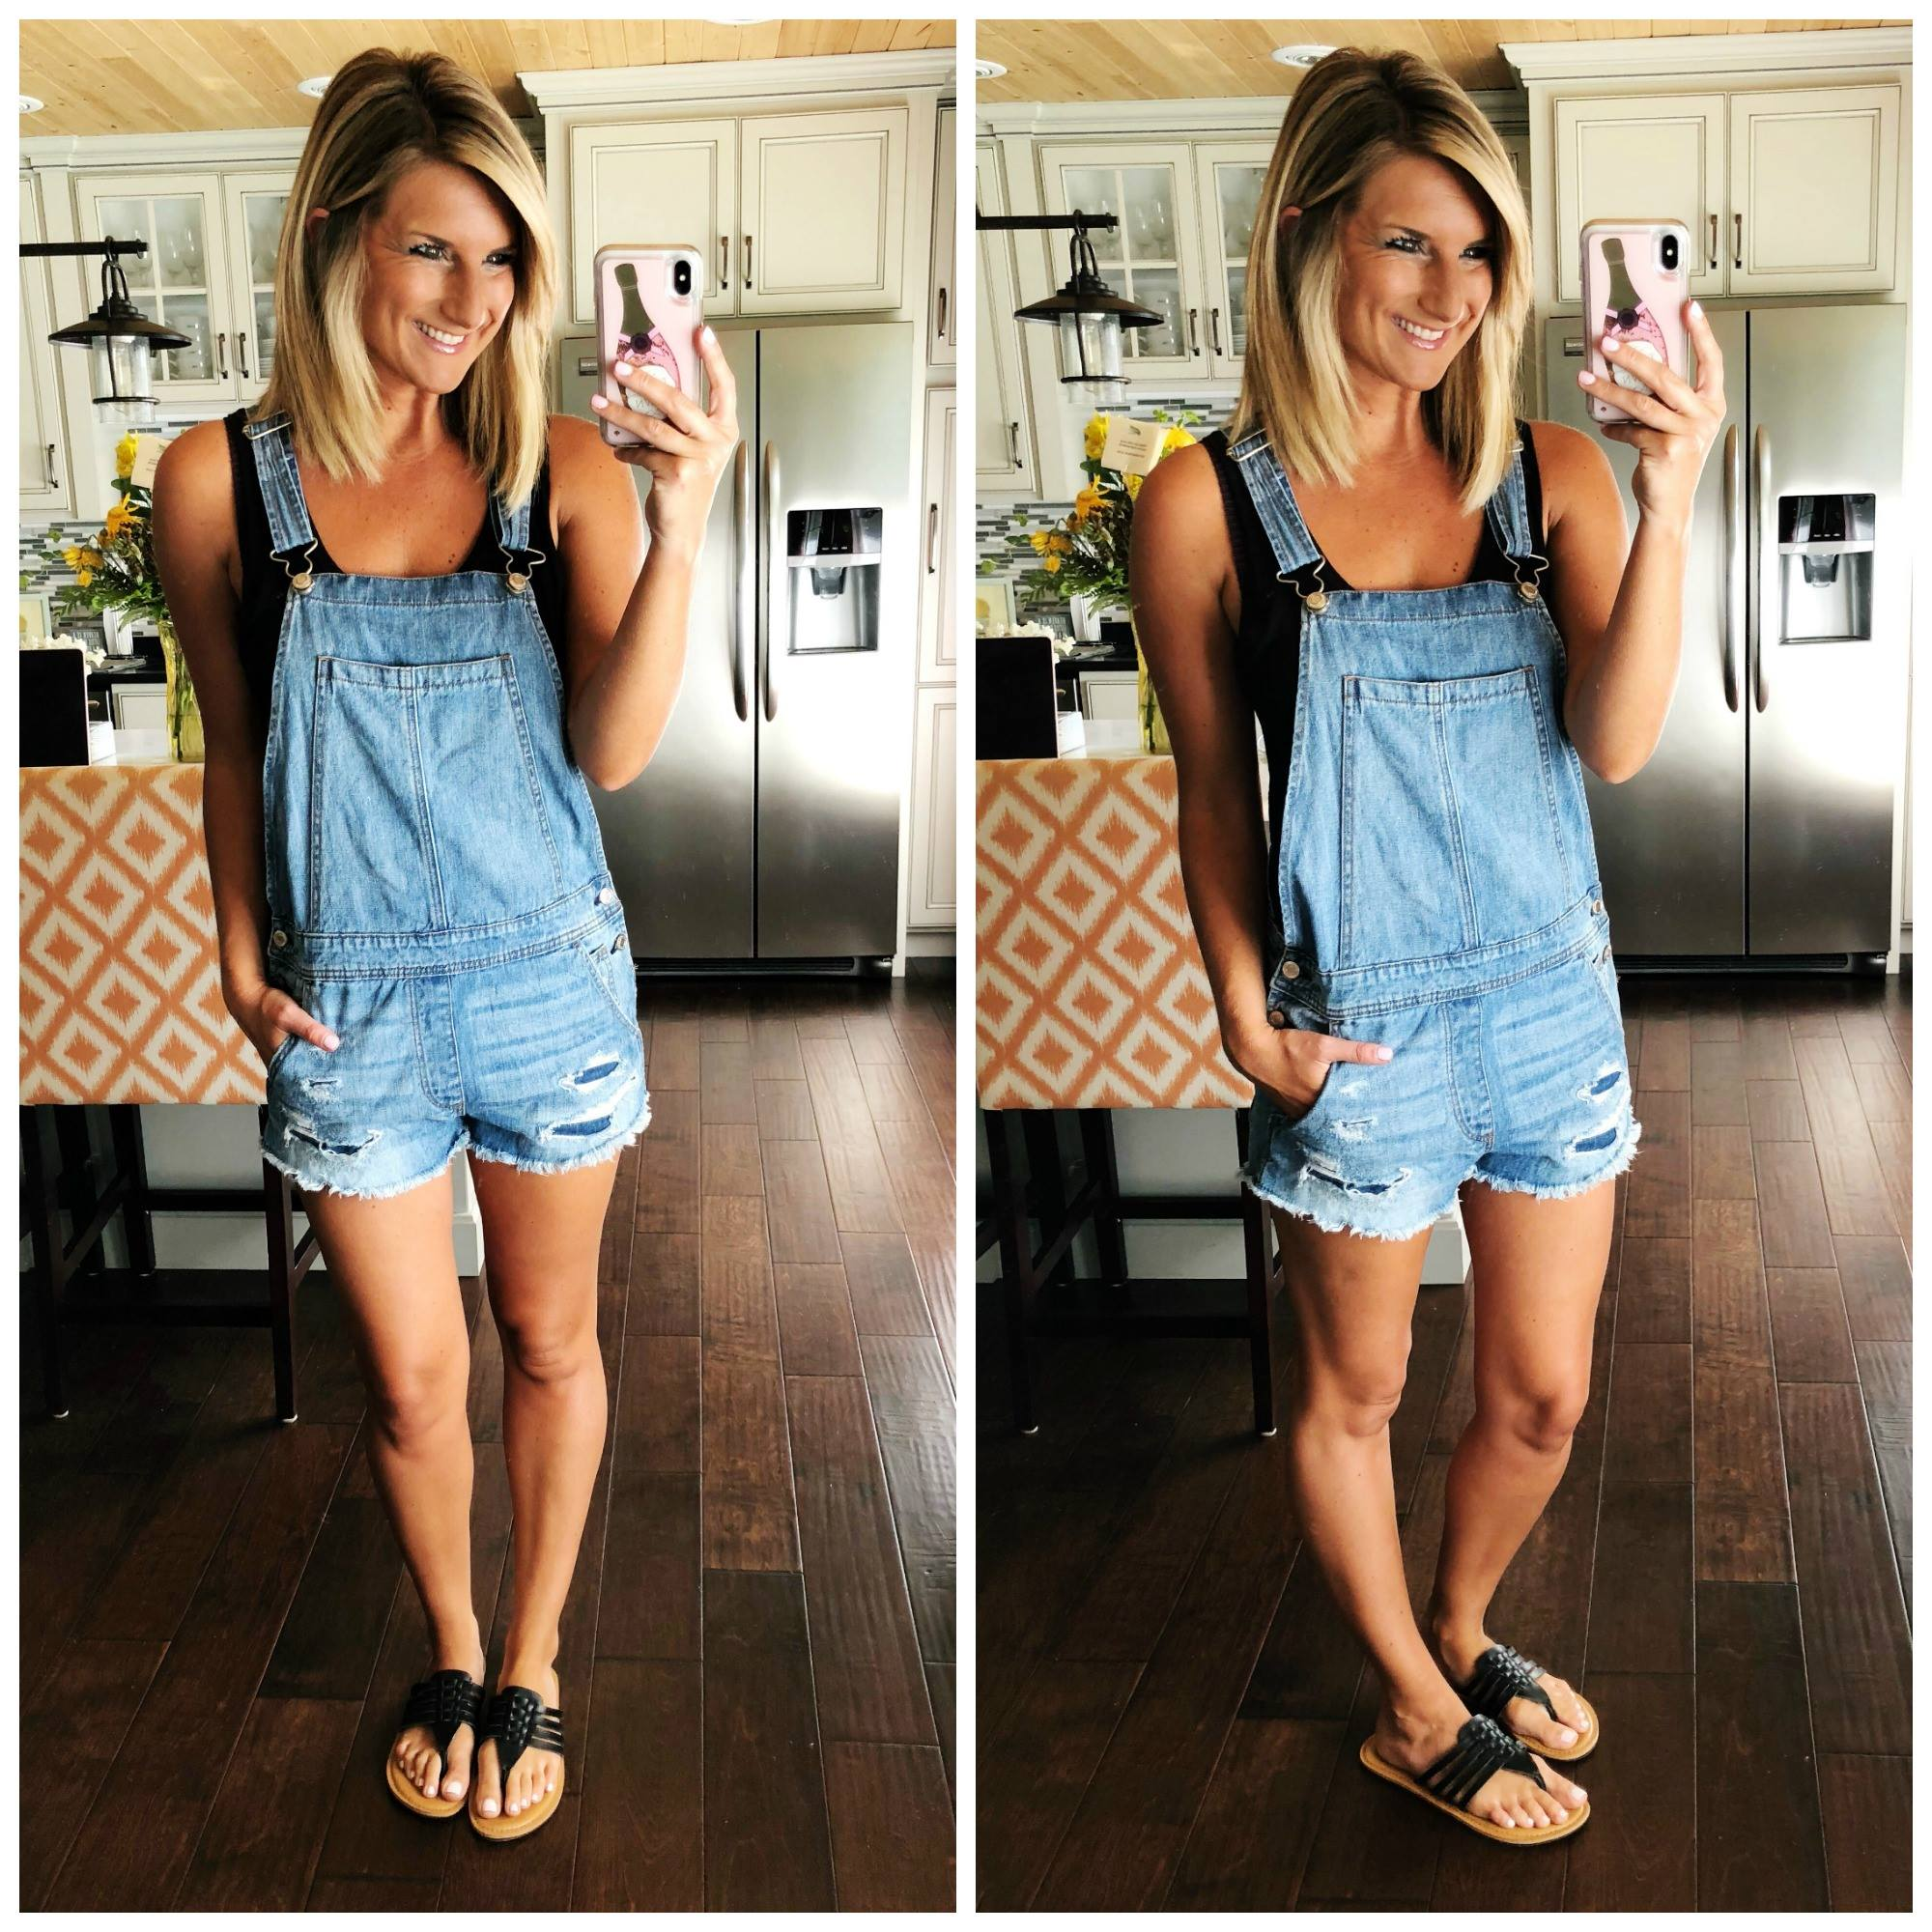 What to wear with overalls // Essential tank top // Comfortable sandals